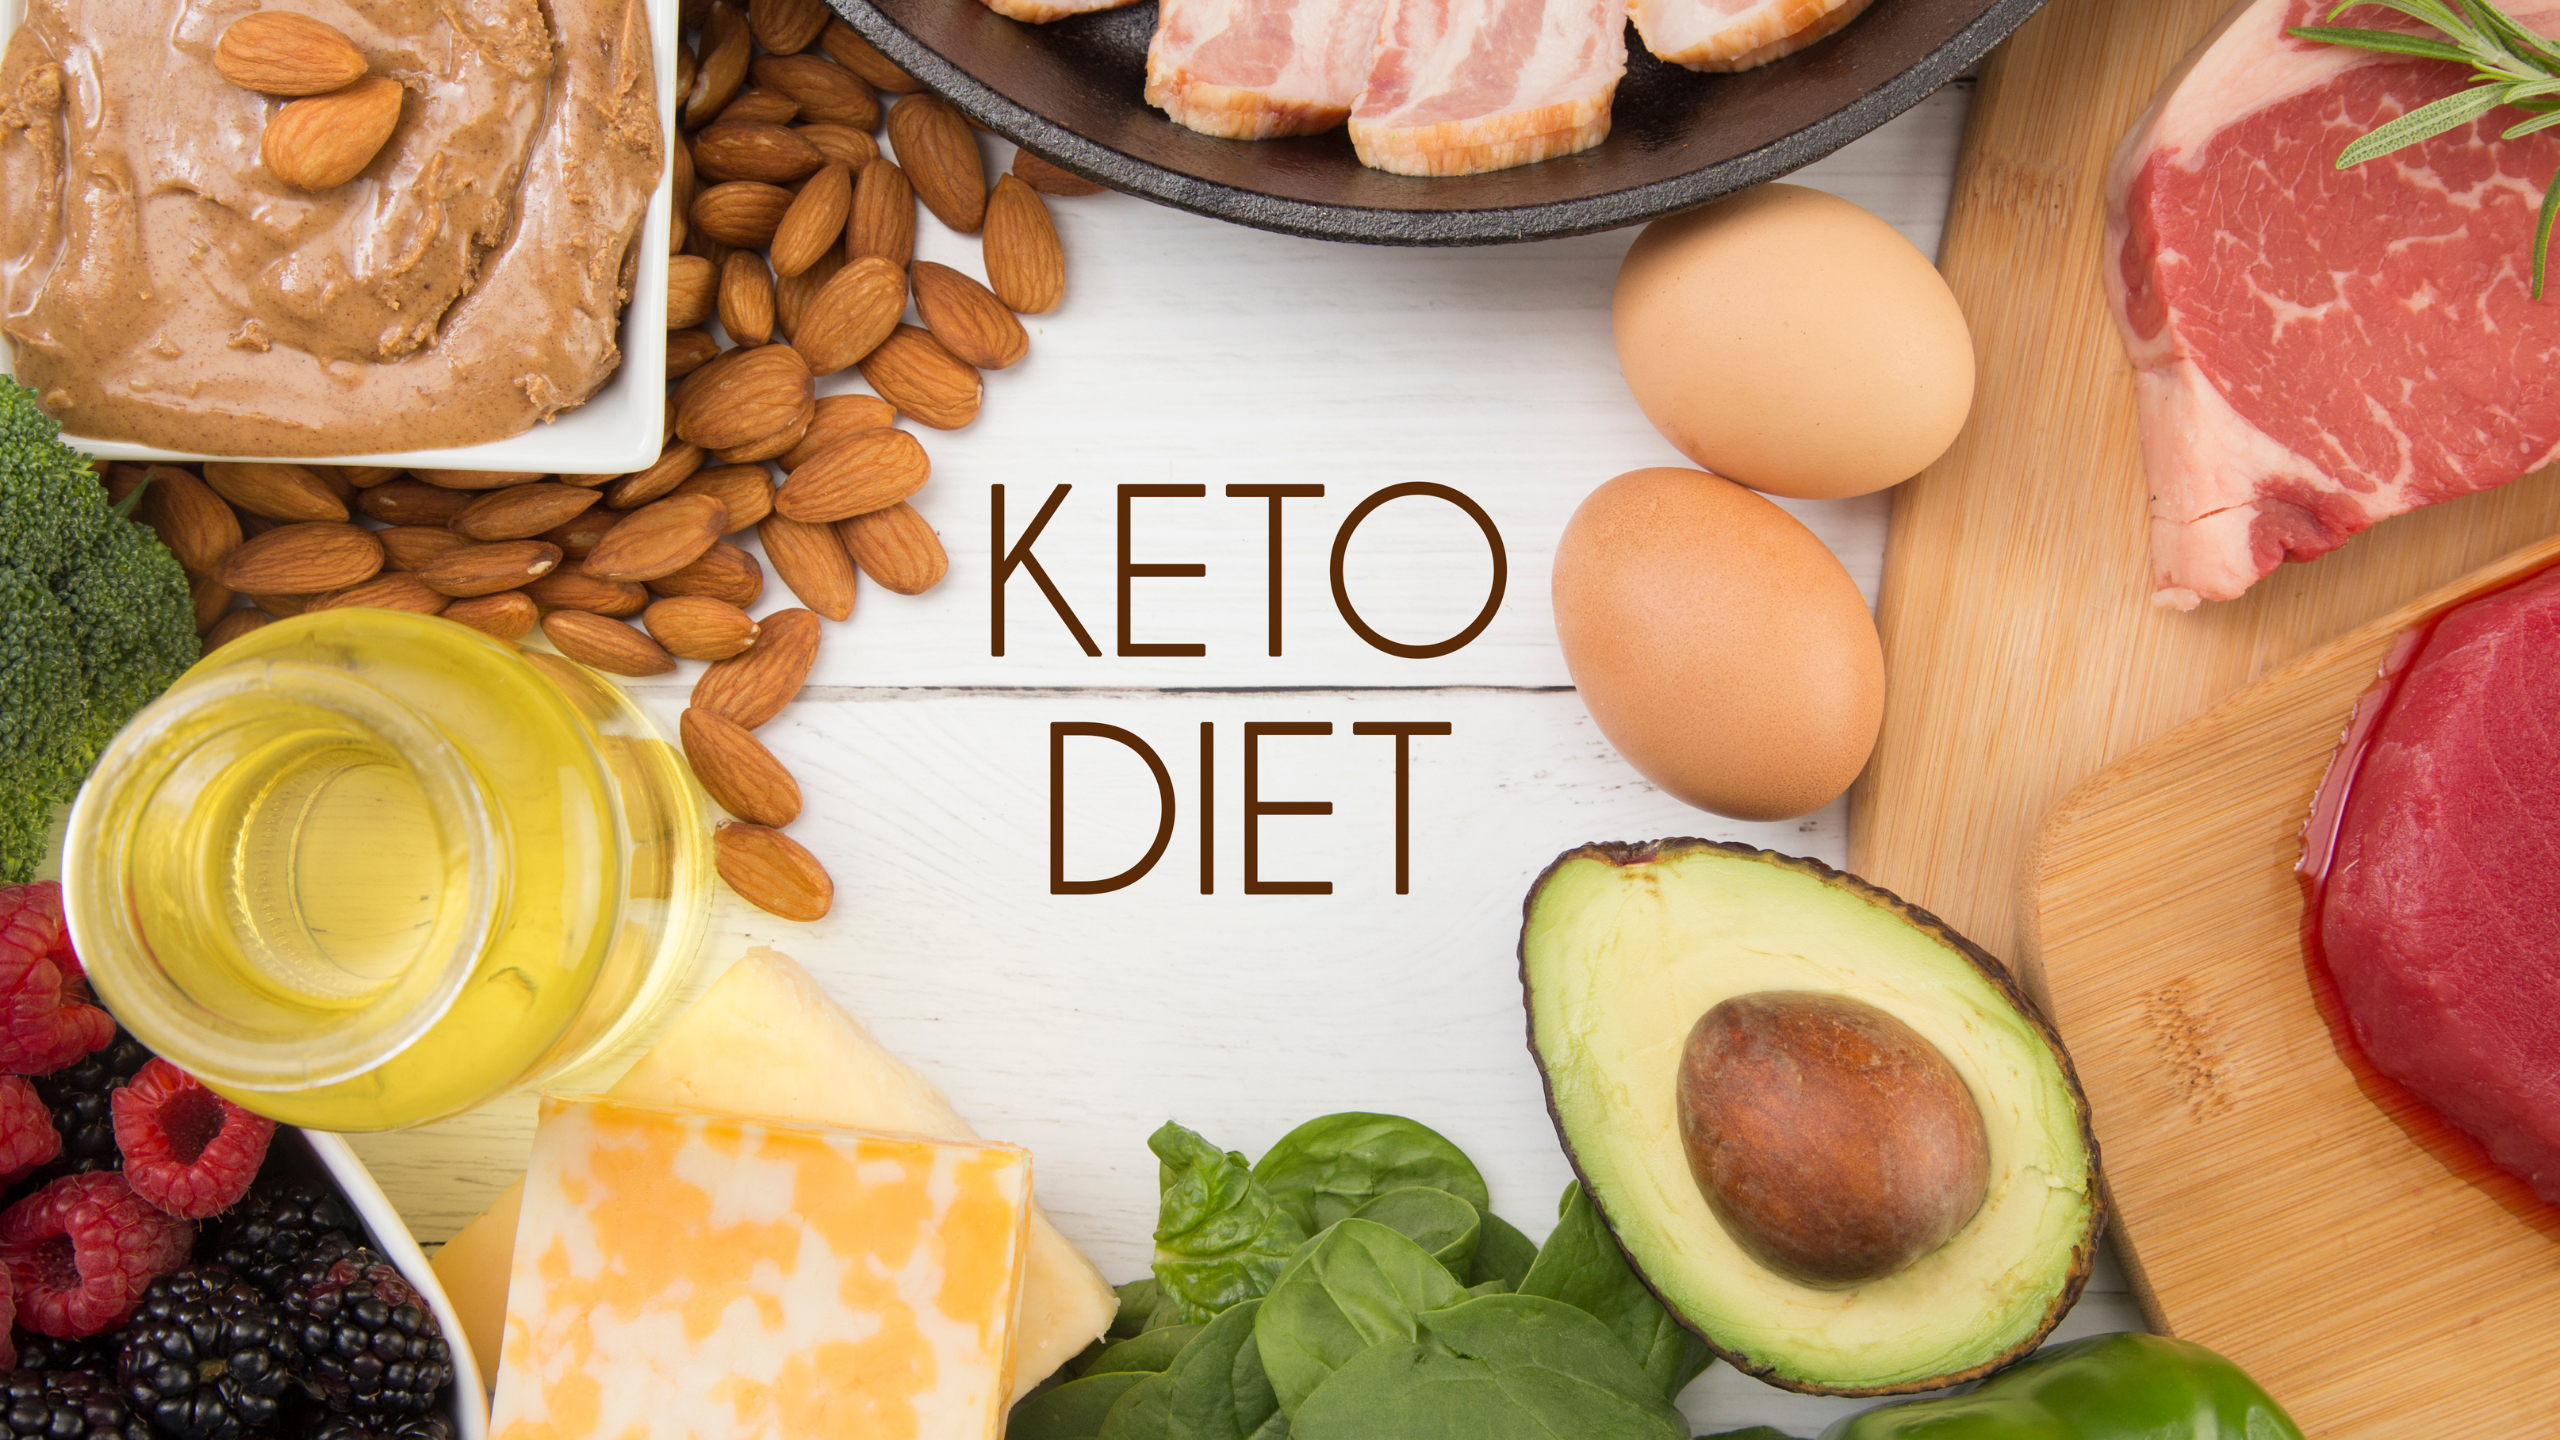 Benefits of The Keto Diet